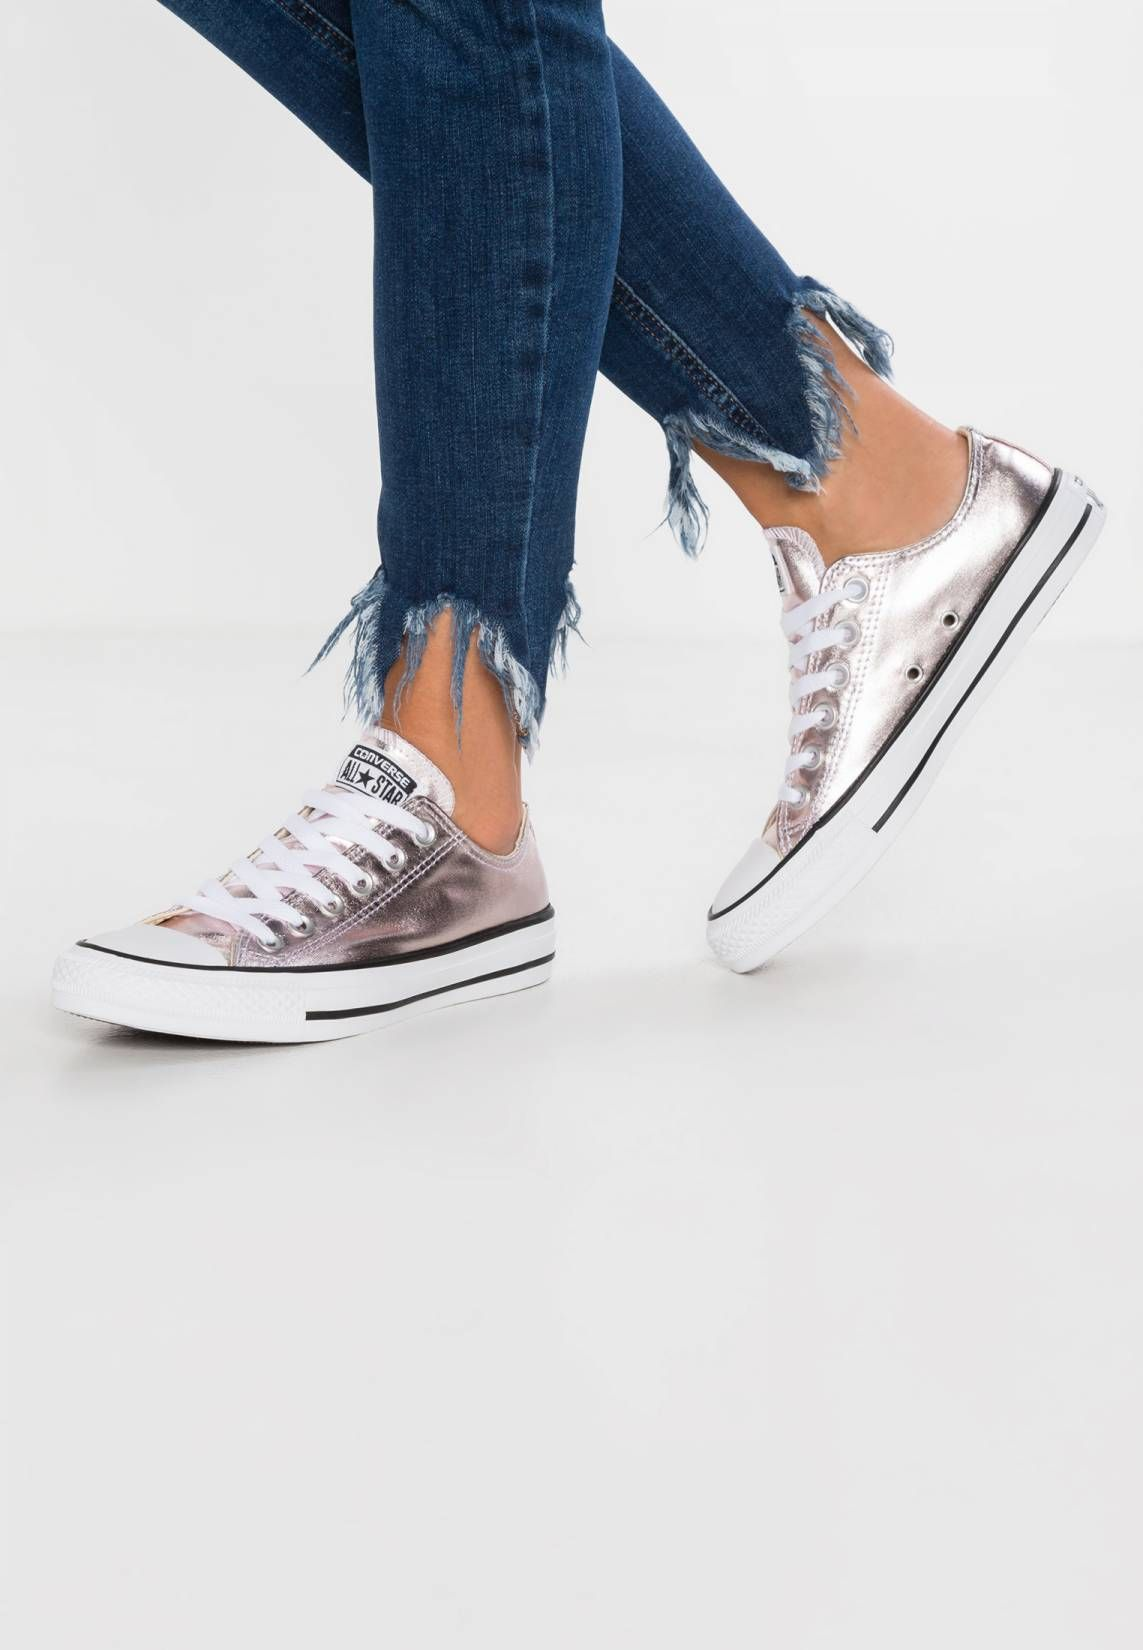 Converse CHUCK TAYLOR ALL STAR METALLIC CANVAS - Zapatillas altas rose quartz/white/black